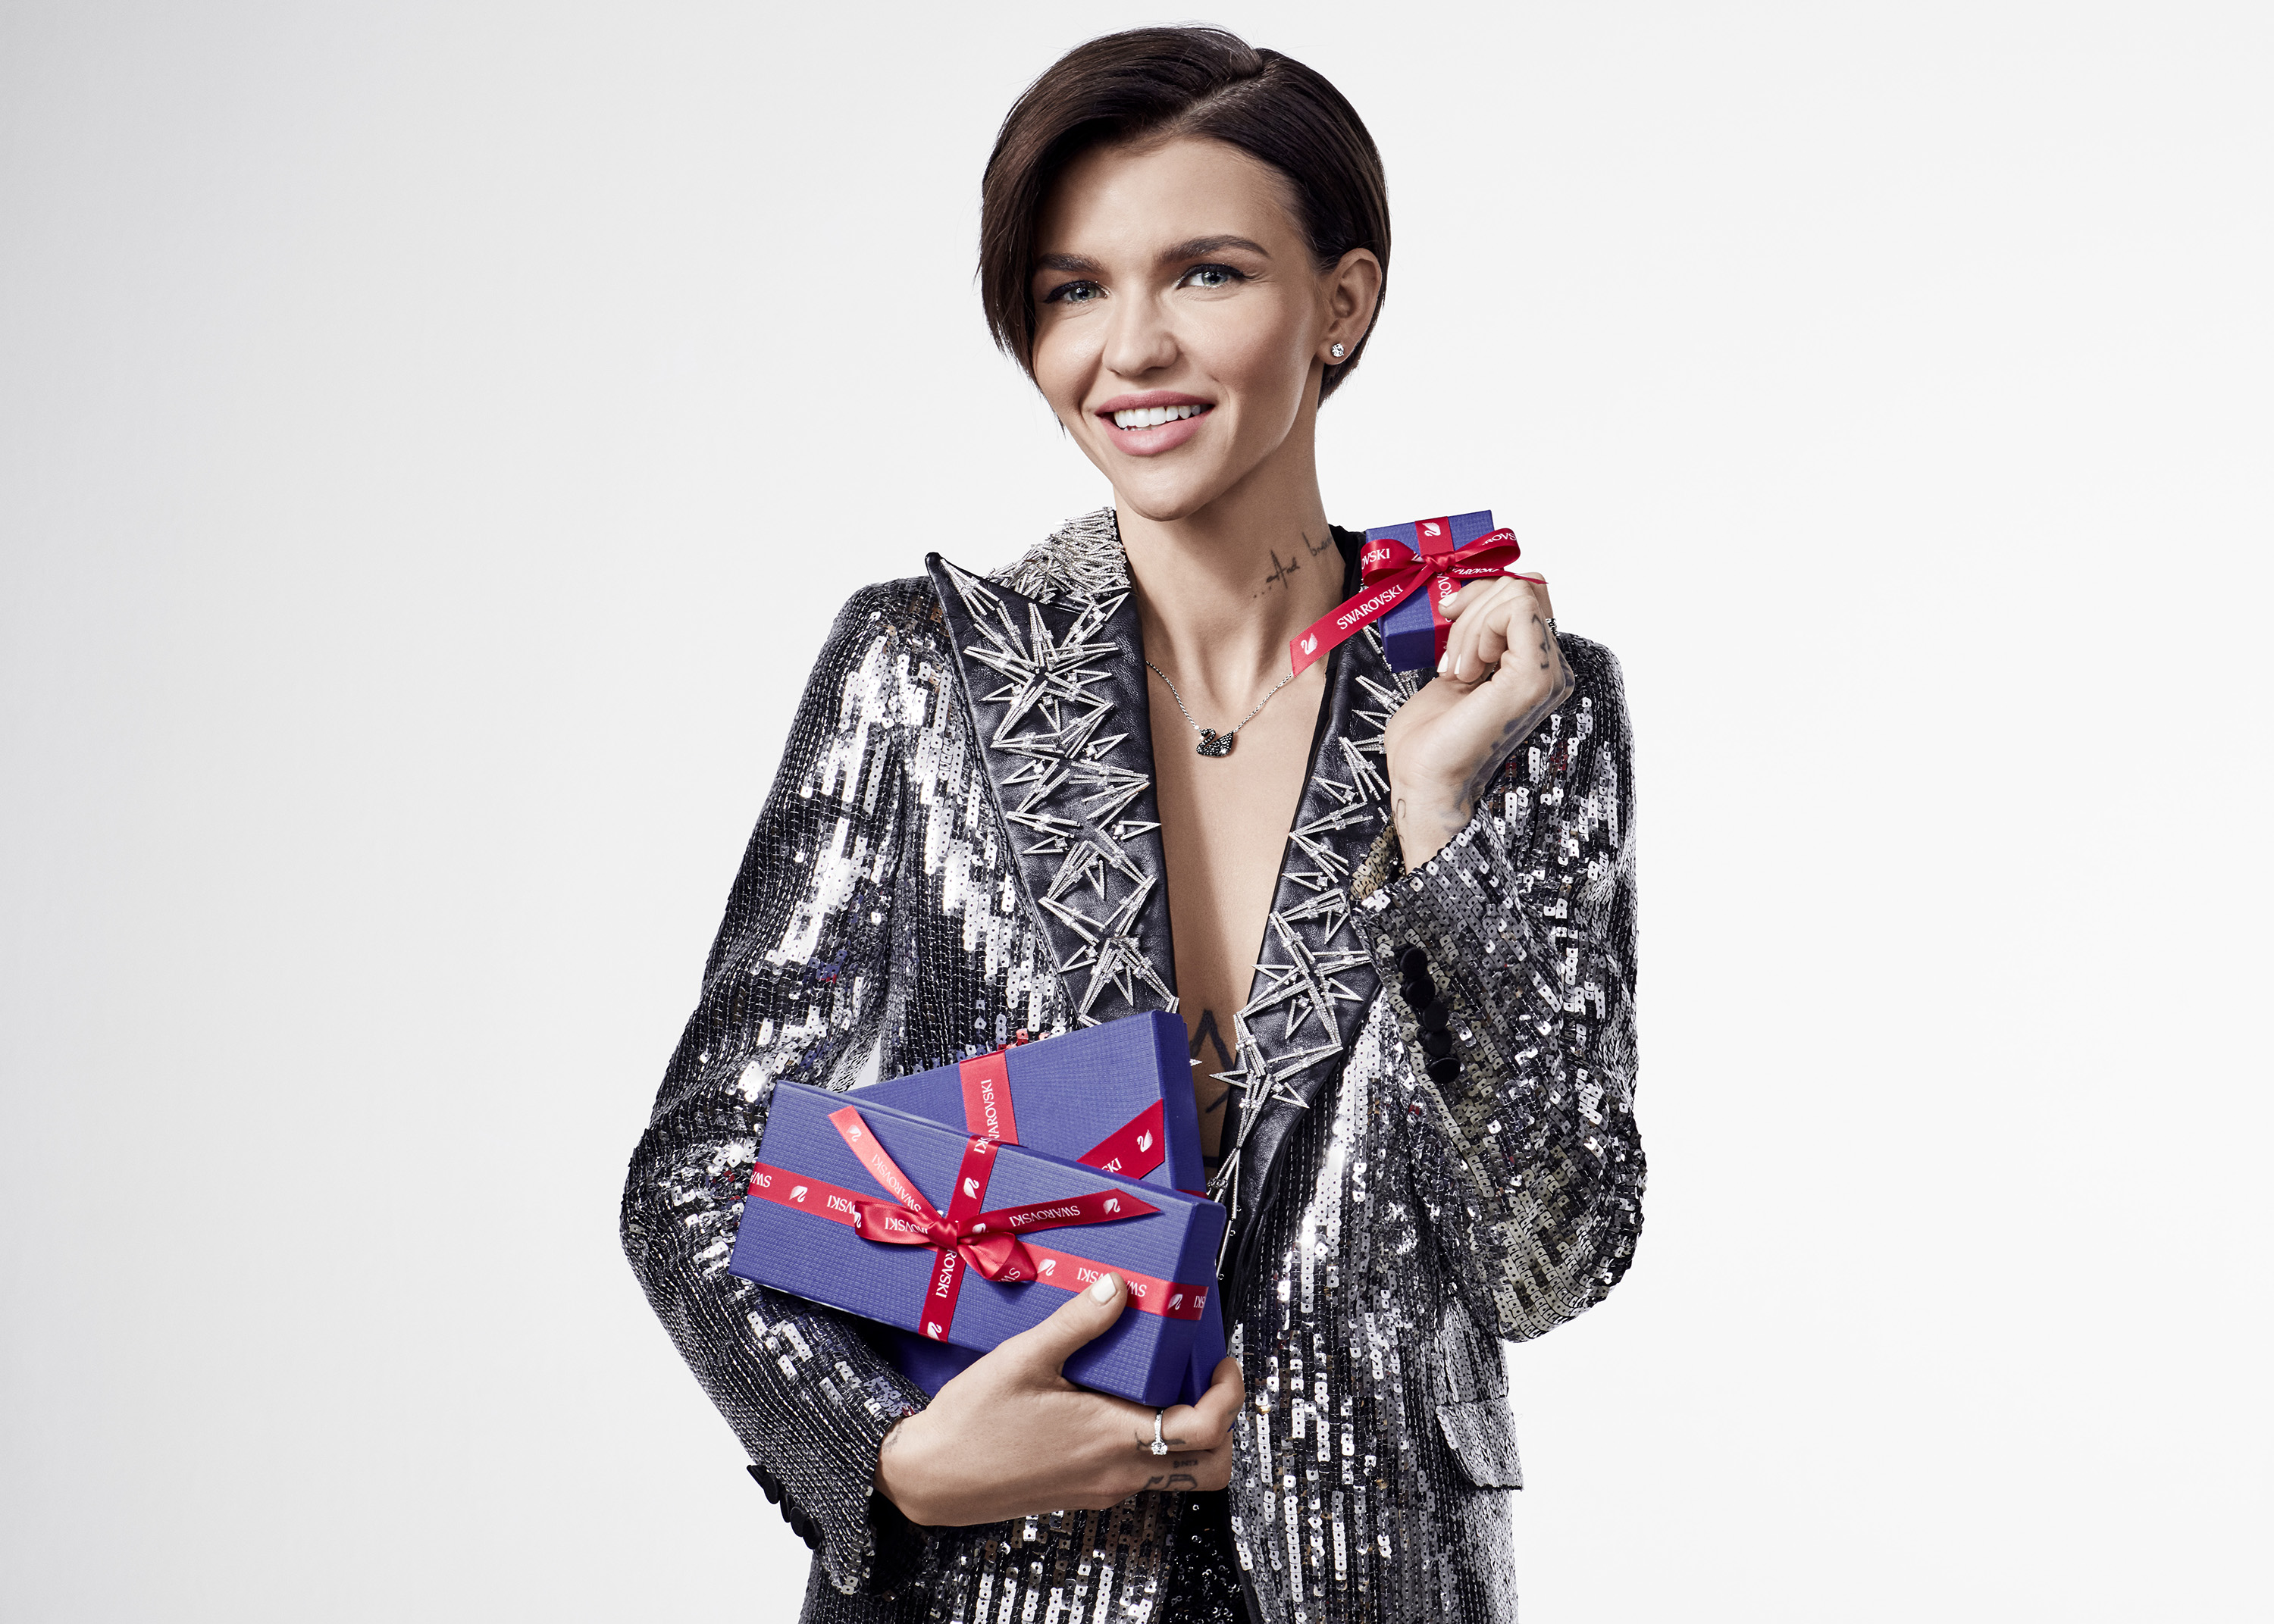 HOLIDAY BLUE BOX RUBY ROSE 2